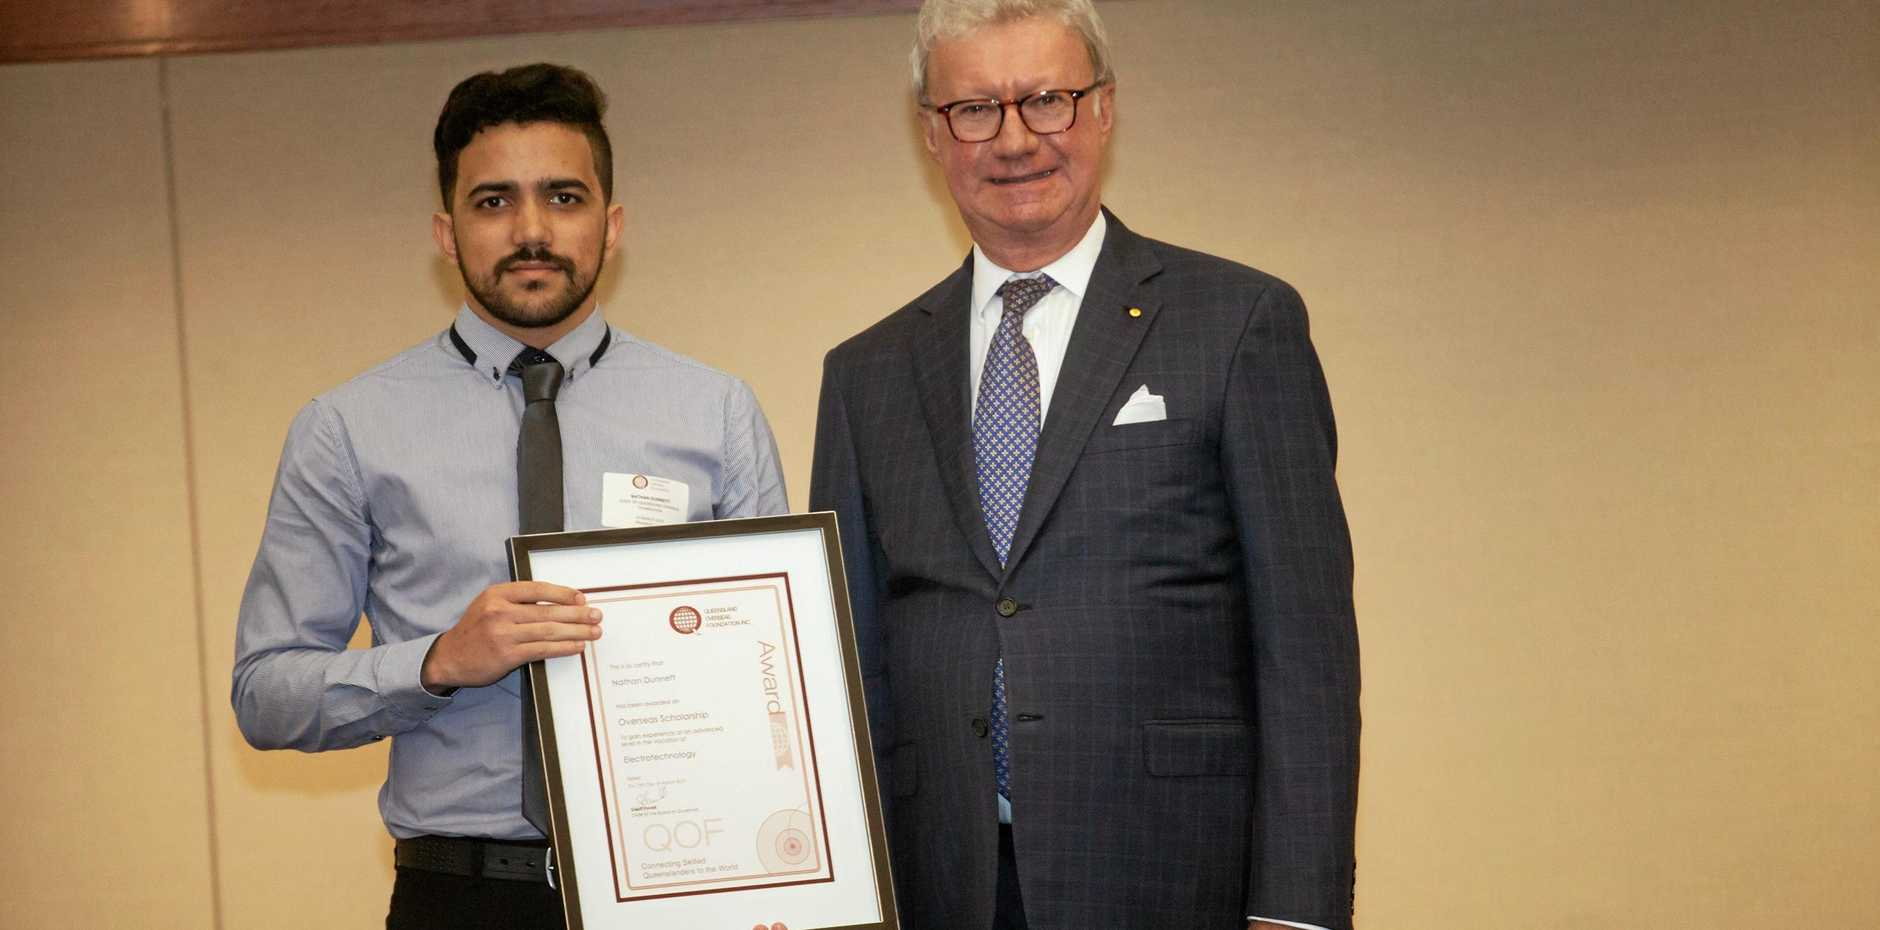 Gladstone electrician Nathan Dunnett receives a Queensland Overseas Foundation award from Governor of Queensland,  Paul de Jersey at Parliament house on March 15.